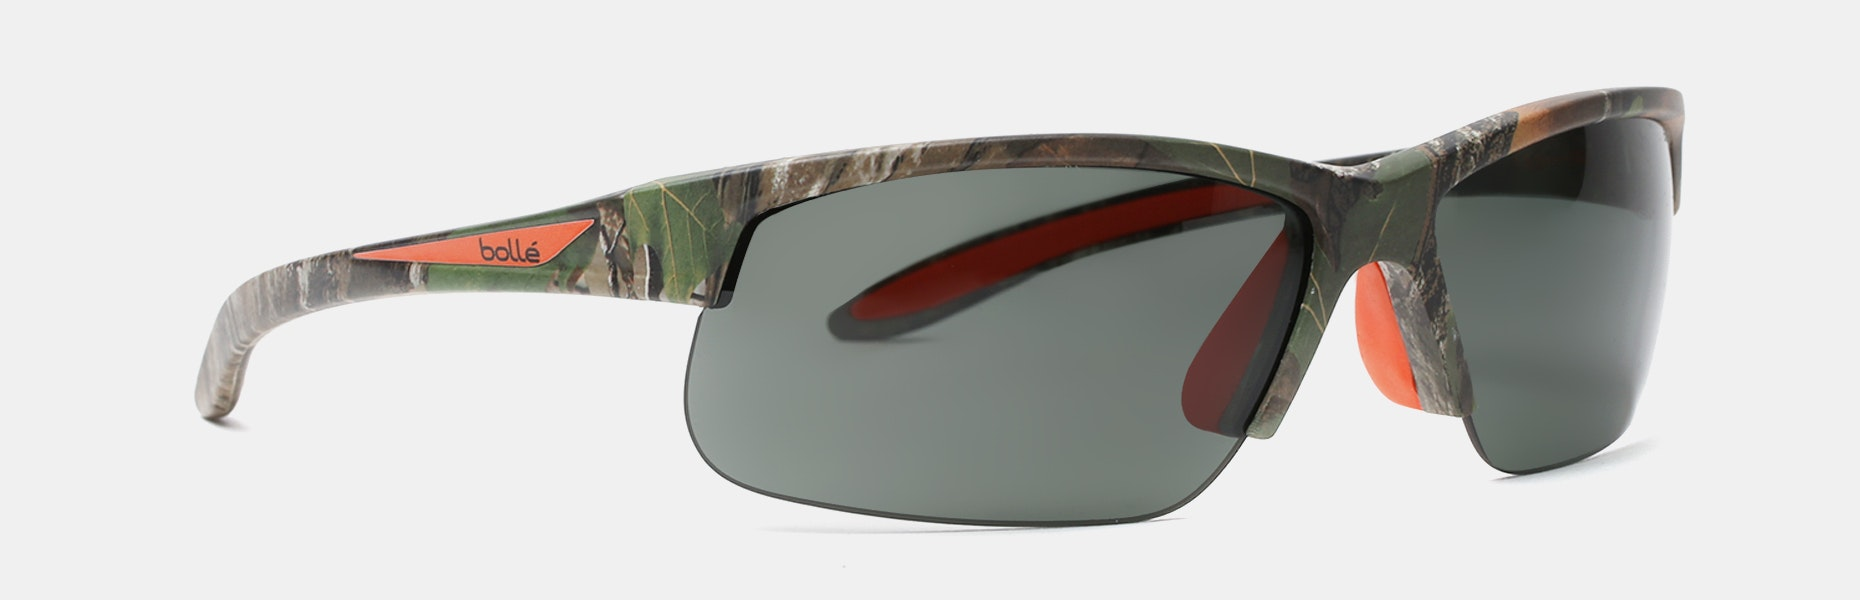 Bolle Breaker RealTree Sport Polarized Sunglasses